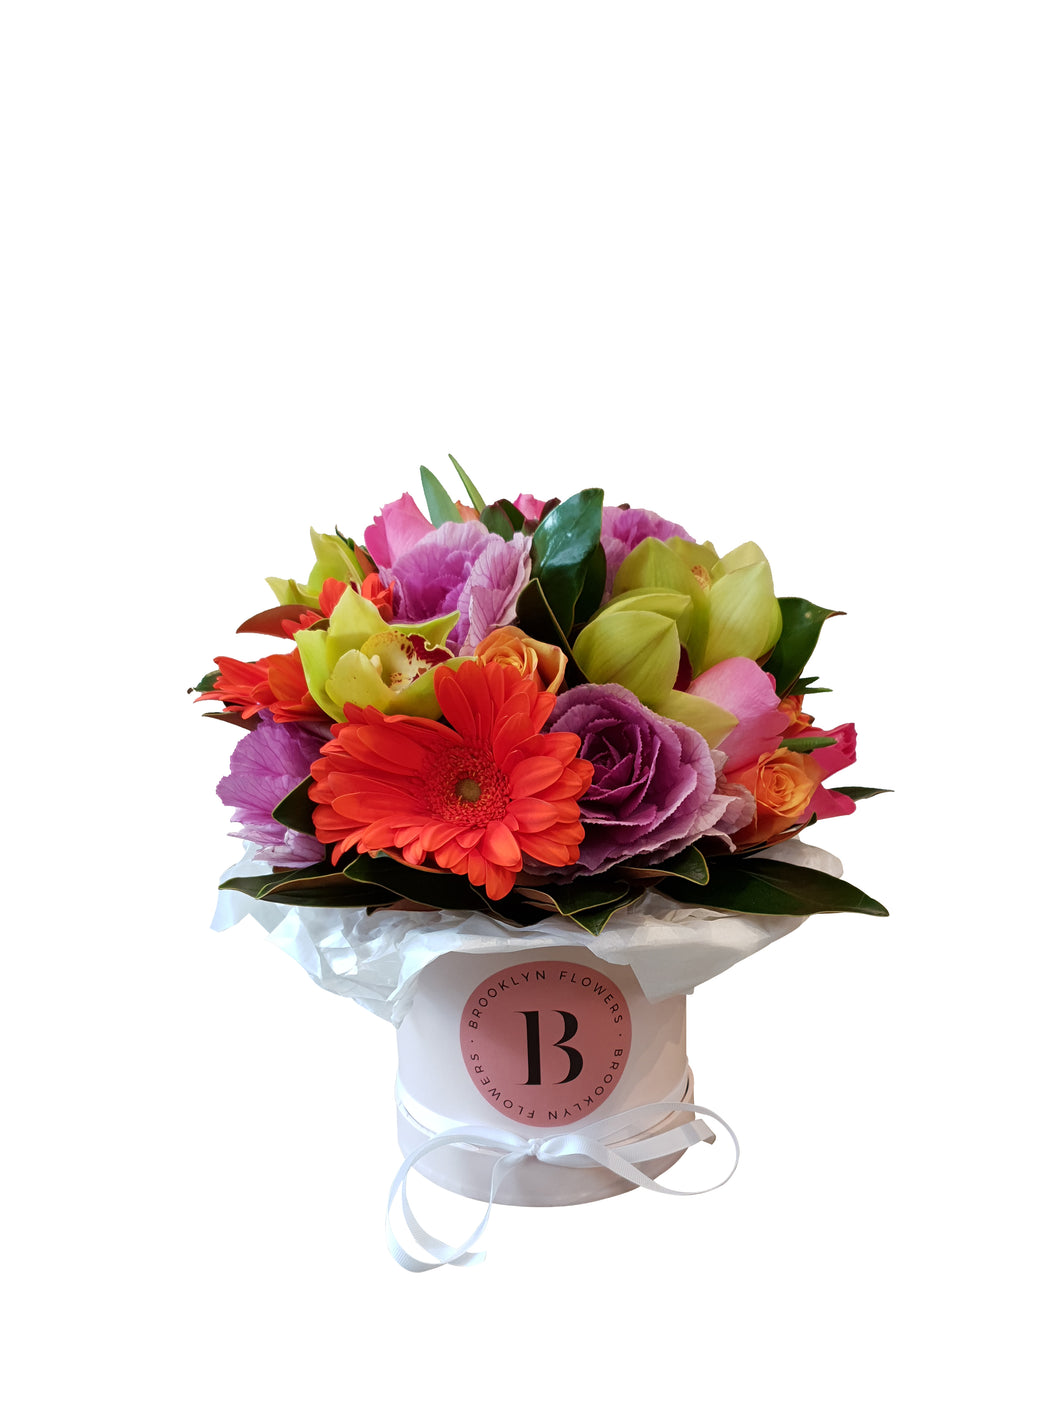 Brooklyn Posy Box Cheerful - Brooklyn Flowers